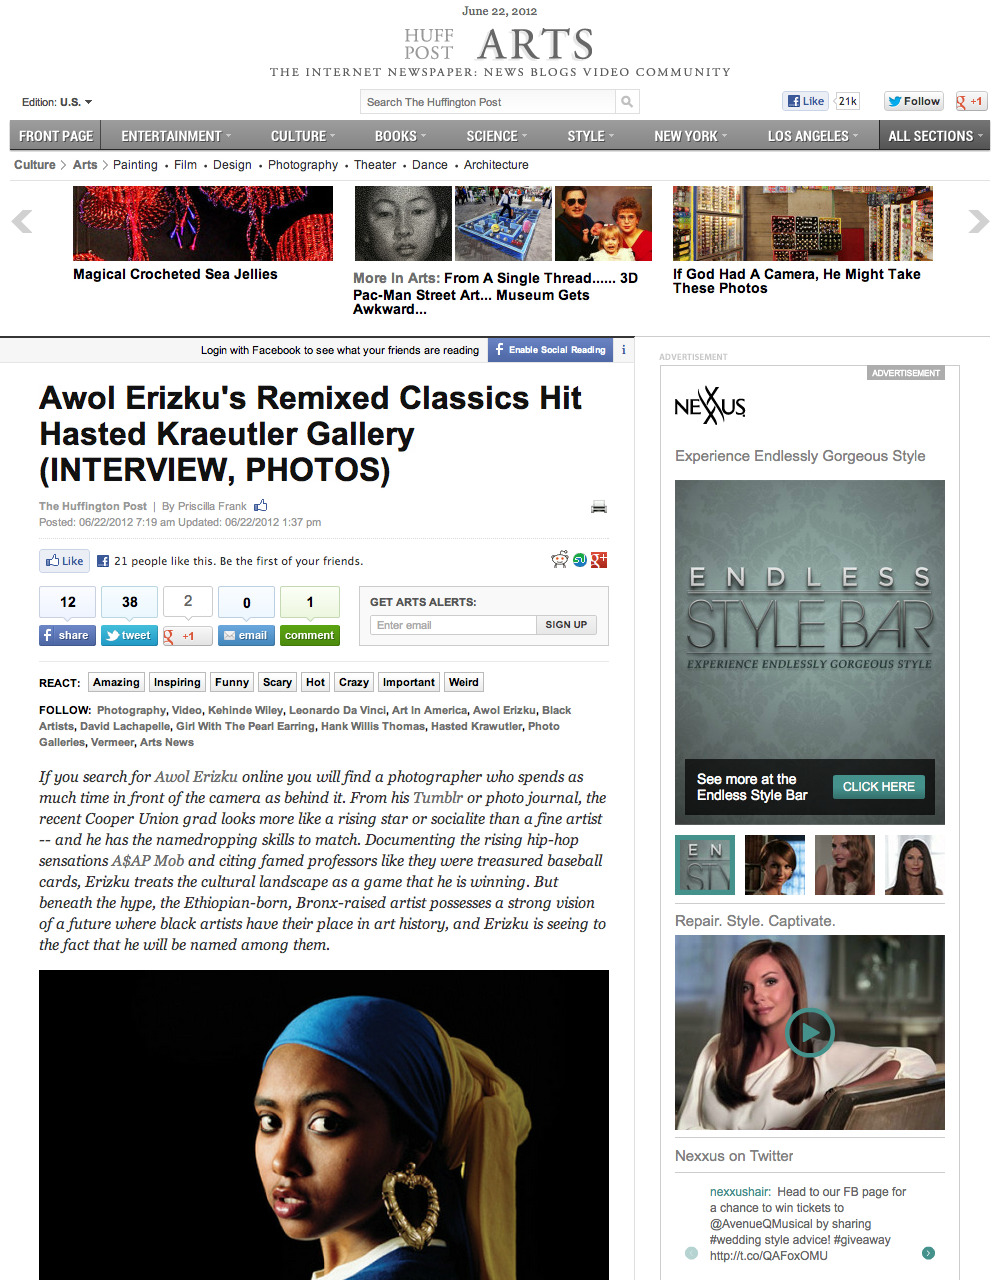 READ MY INTERVIEW WITH THE HUFFINGTON POST HERE